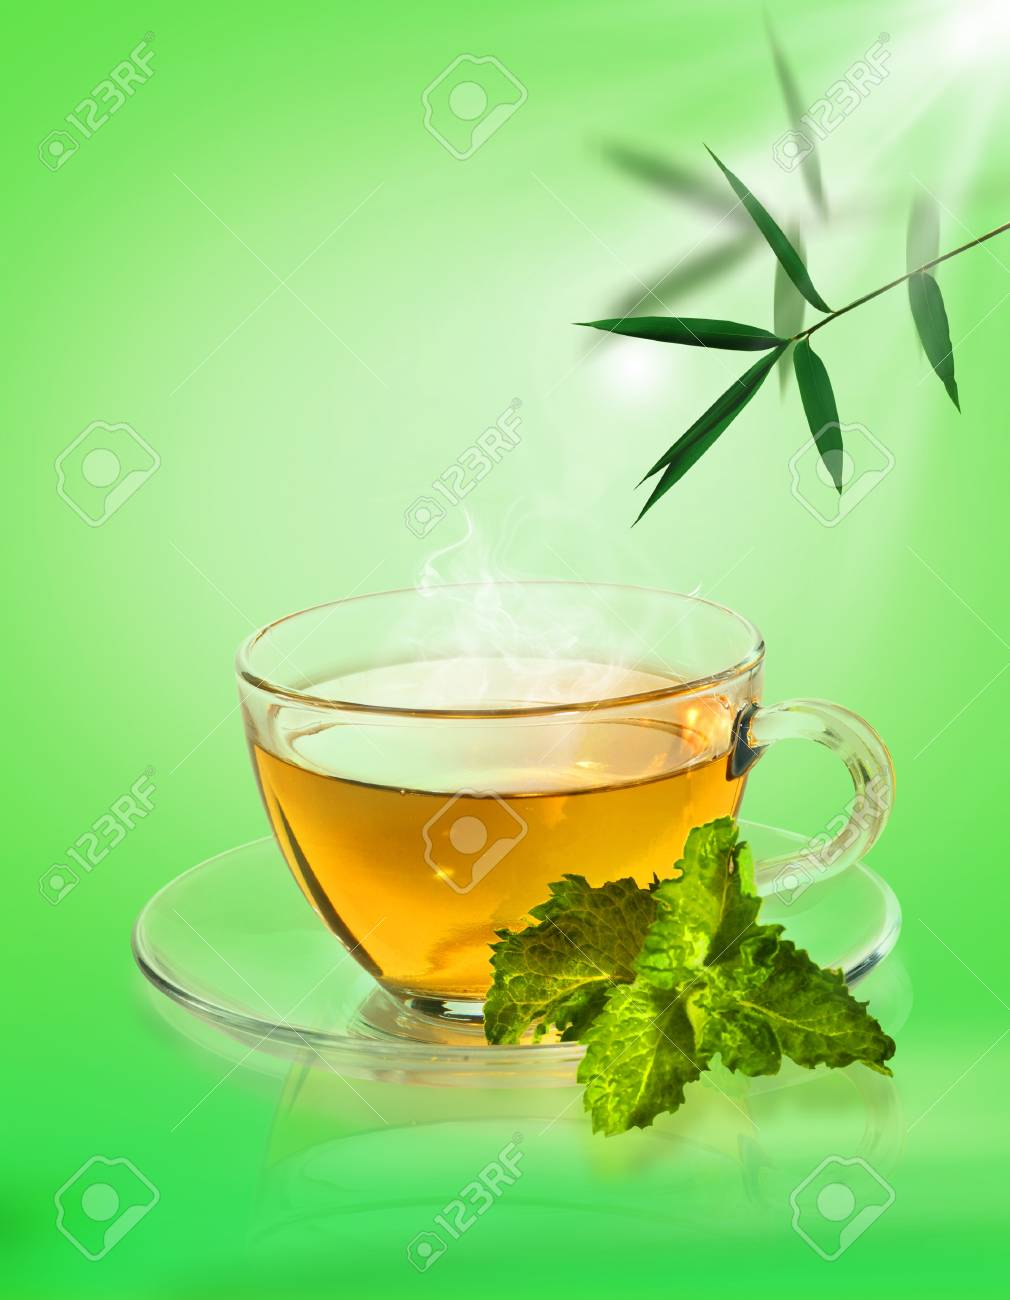 Tea ceremony. Abstract still life over natural backgrounds Stock Photo - 17801061